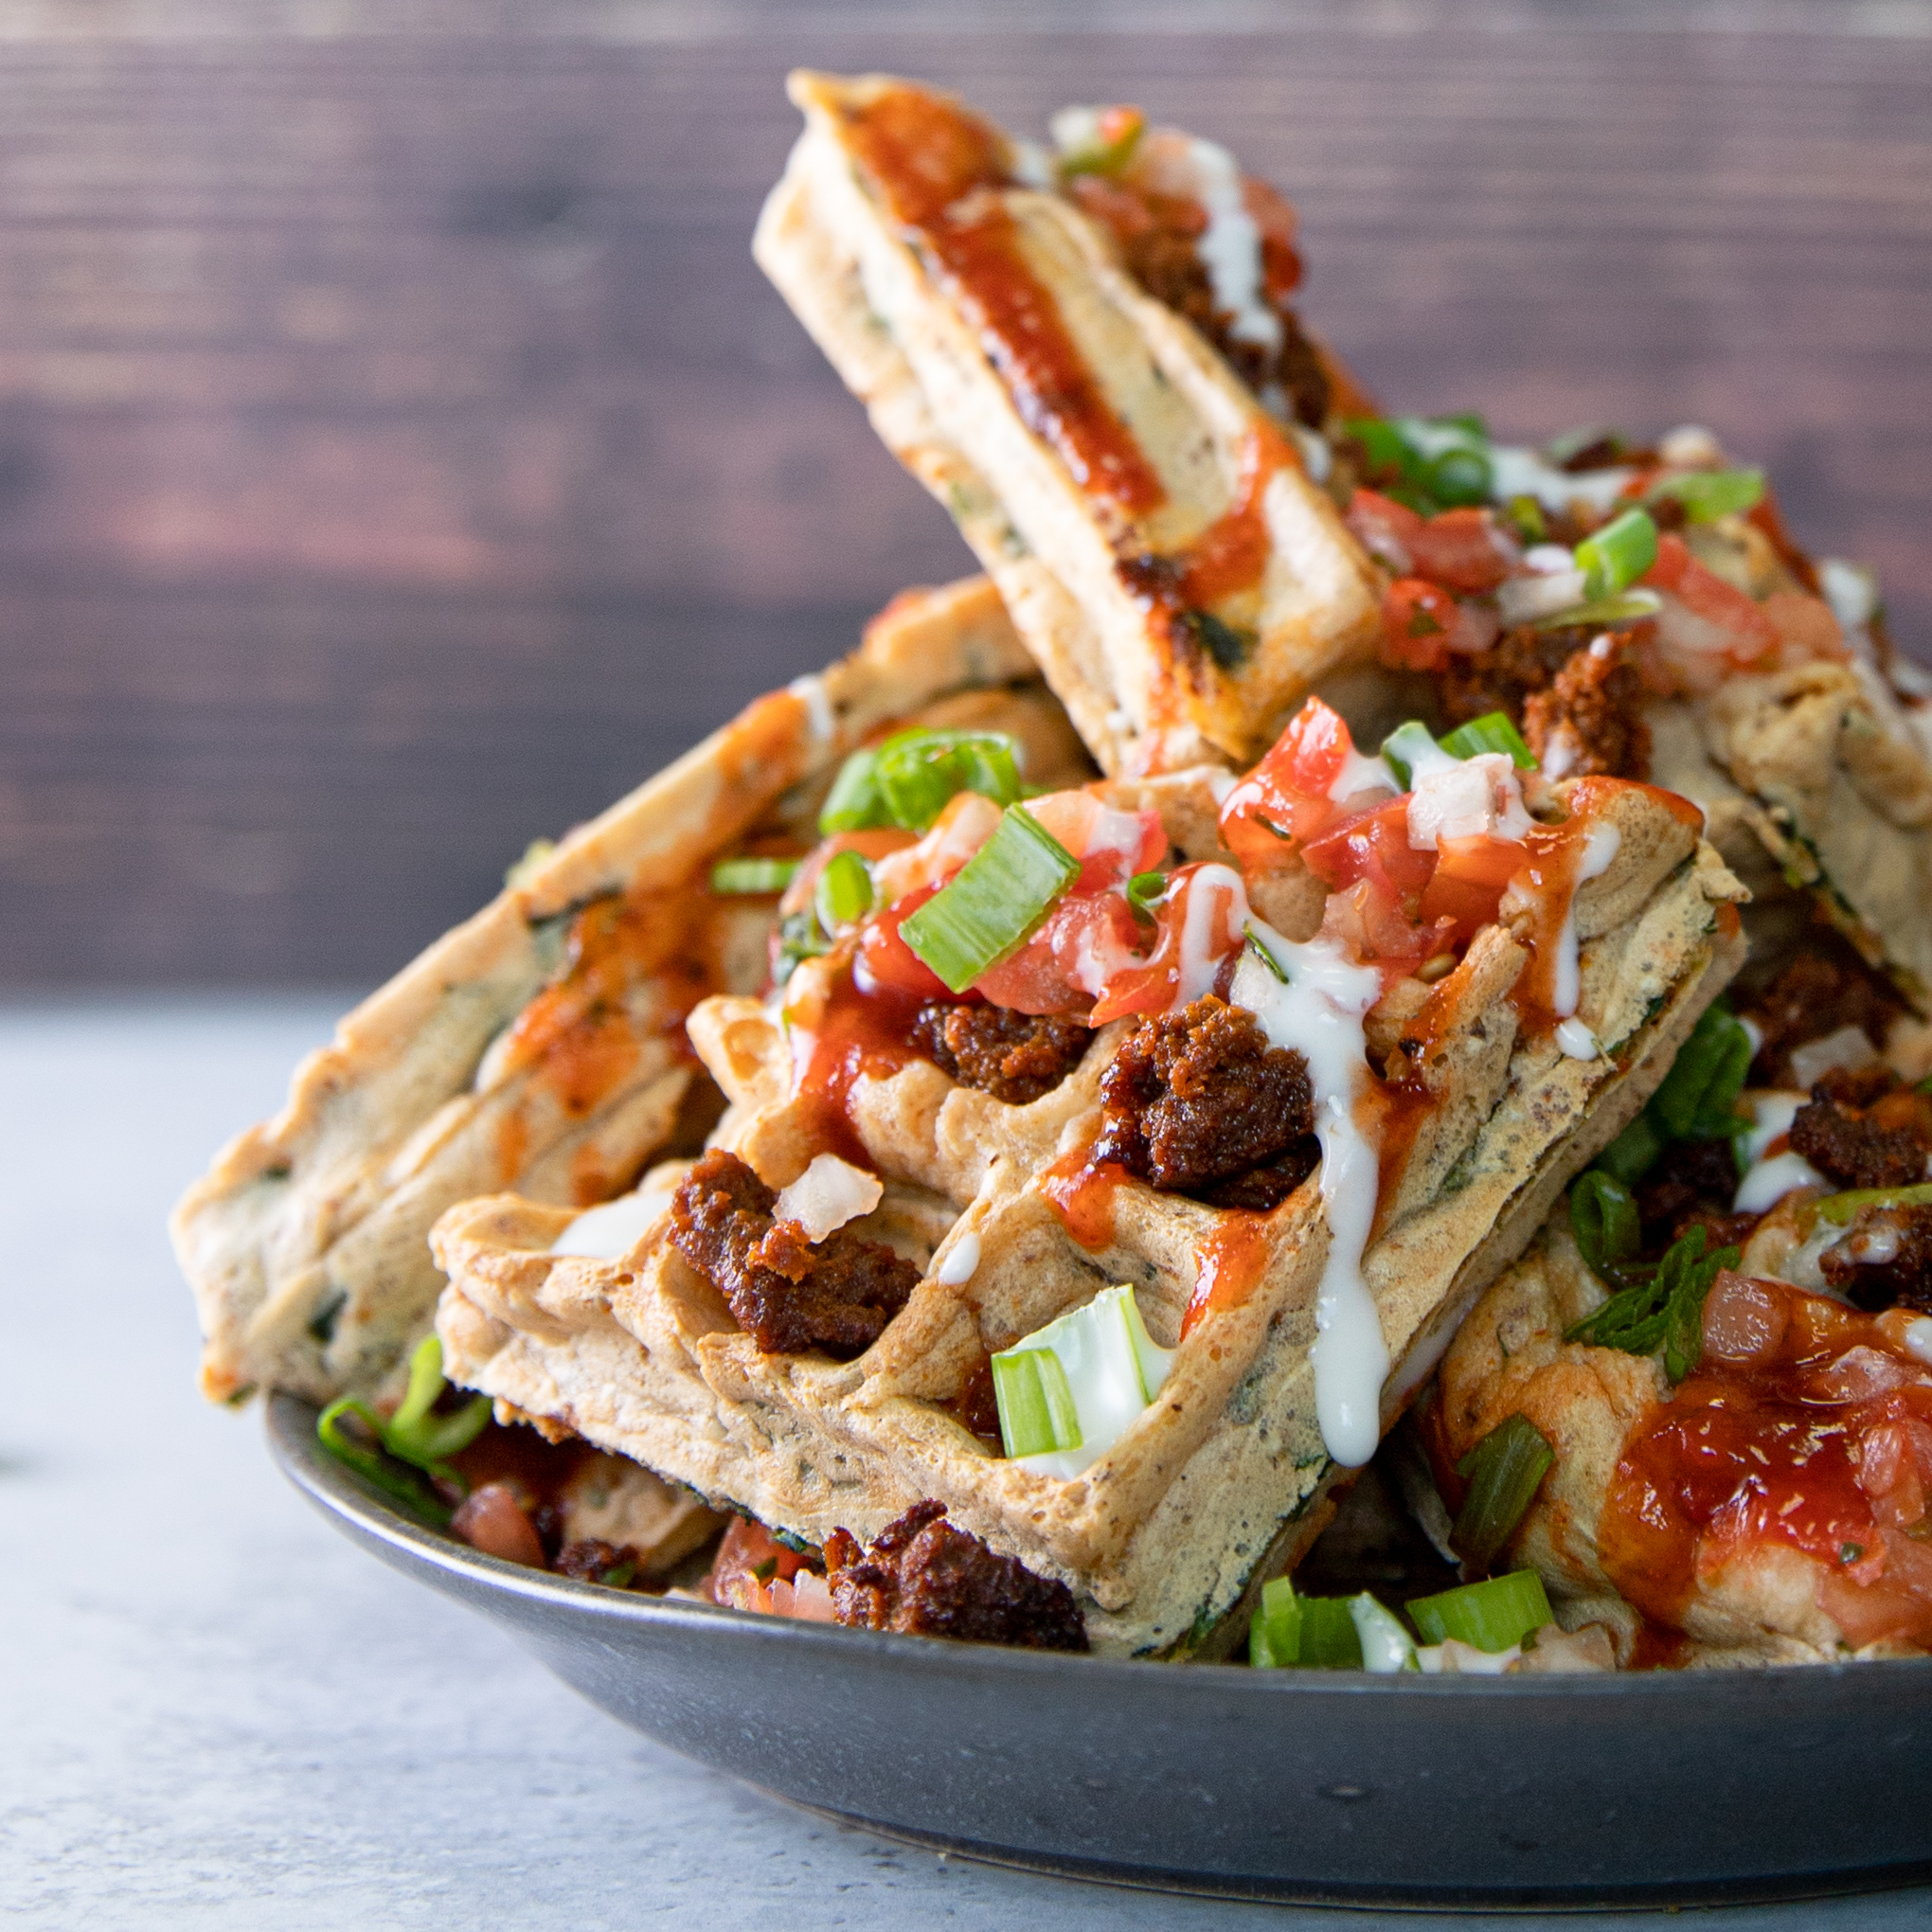 Vegan savory waffles made with No Evil Foods El Capitan chorizo